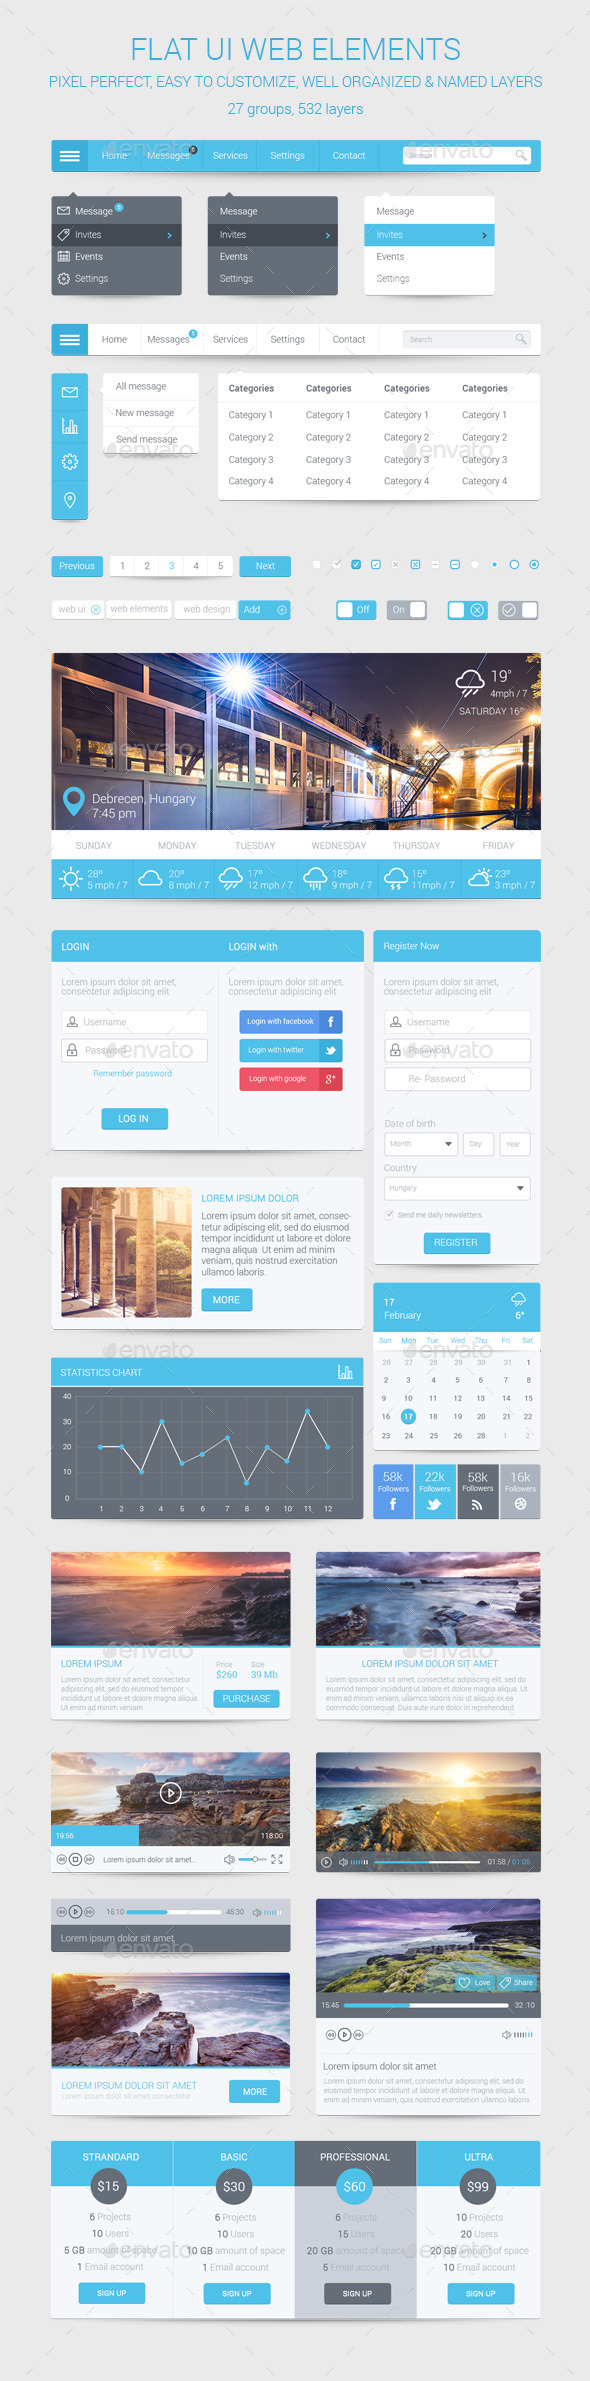 GraphicRiver Flat UI Web Elements 9727557